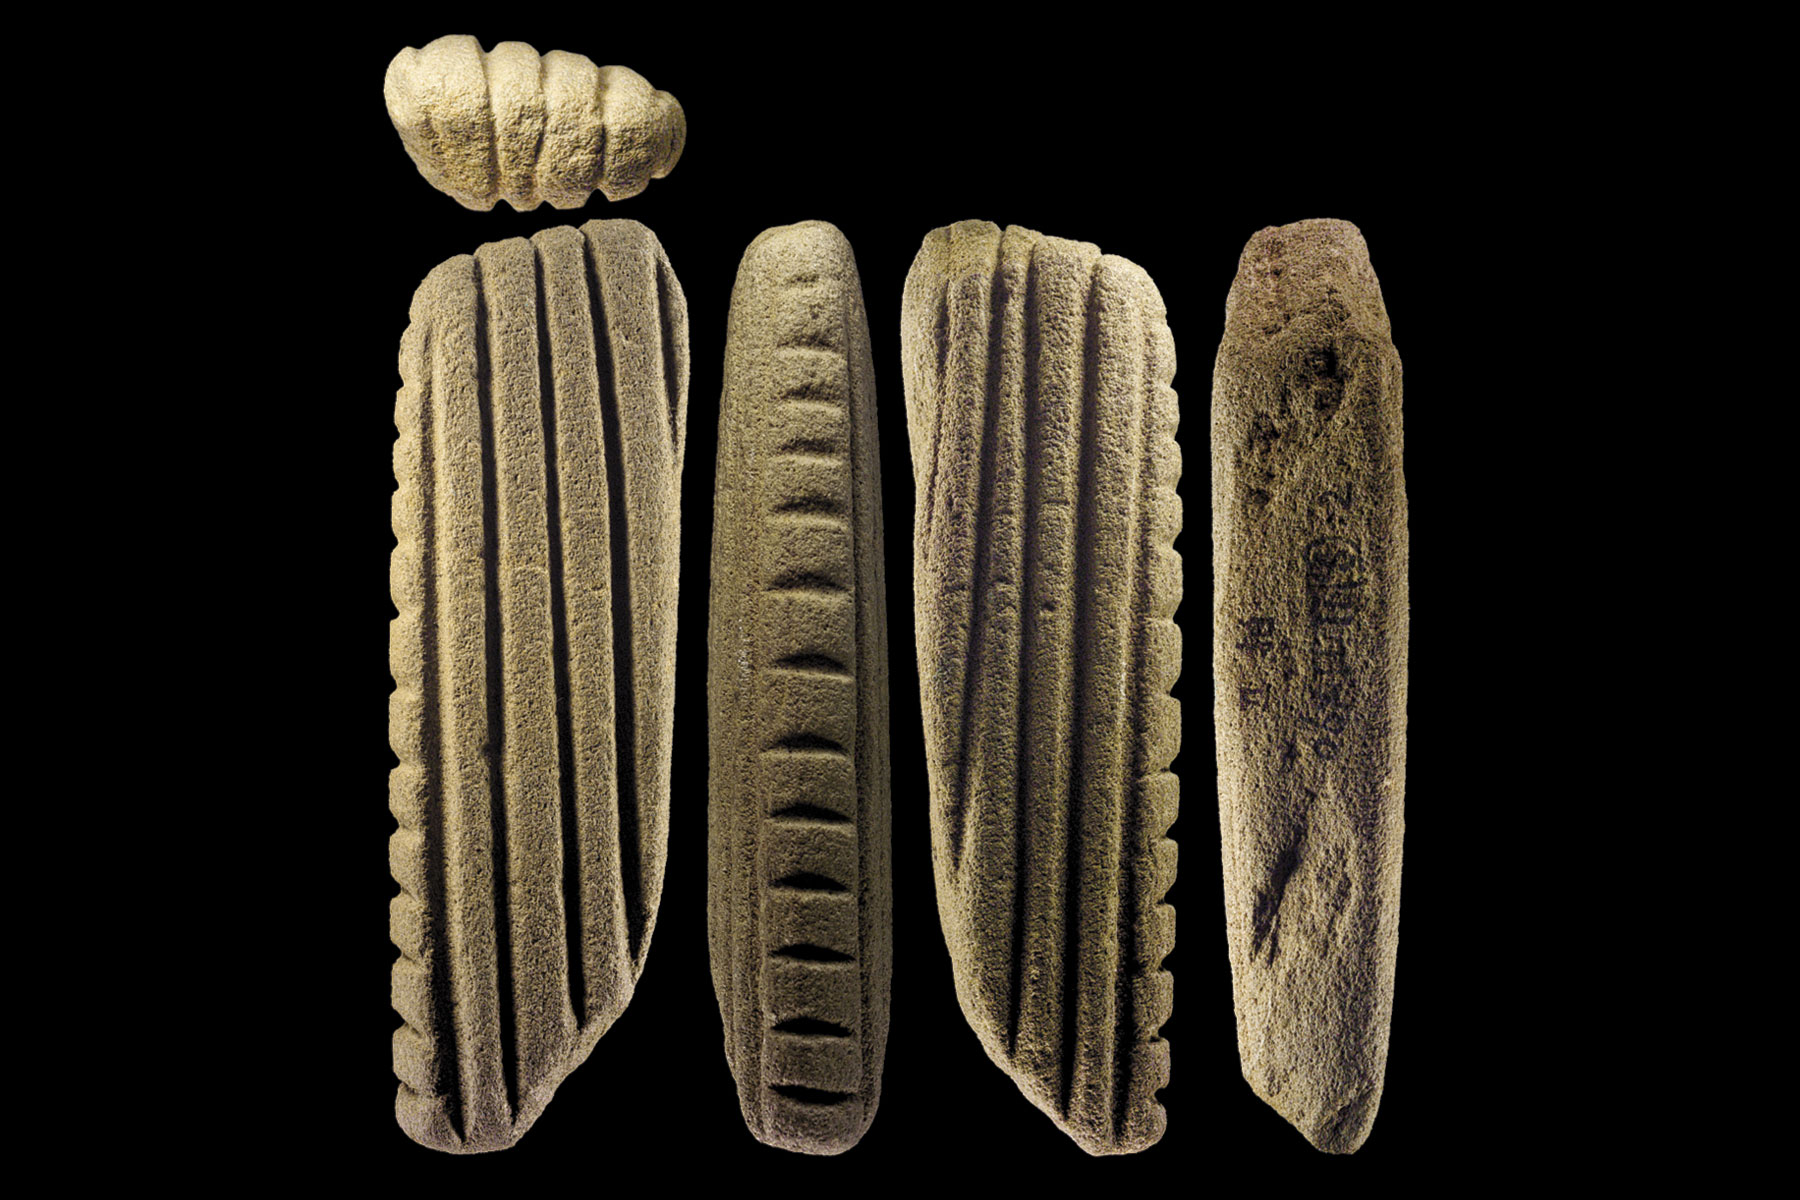 The oldest barkcloth making tool in the world - from the Xiantouling site, Shenzhen.